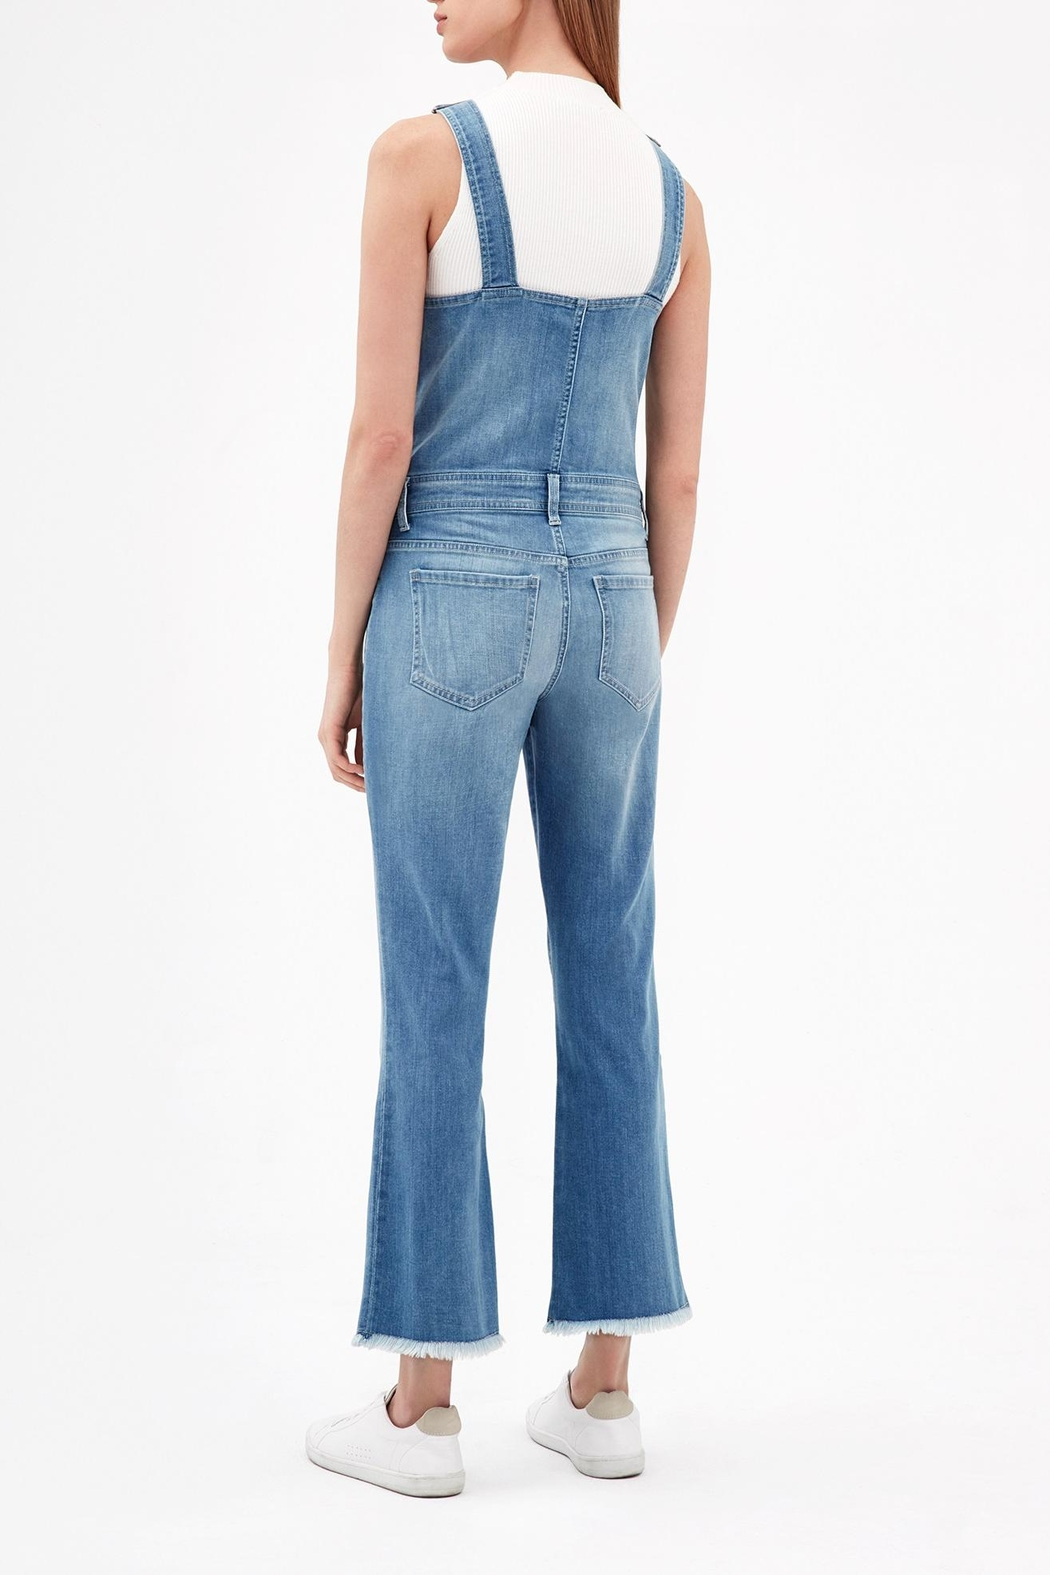 ei8ht dreams Flare Overall - Front Full Image